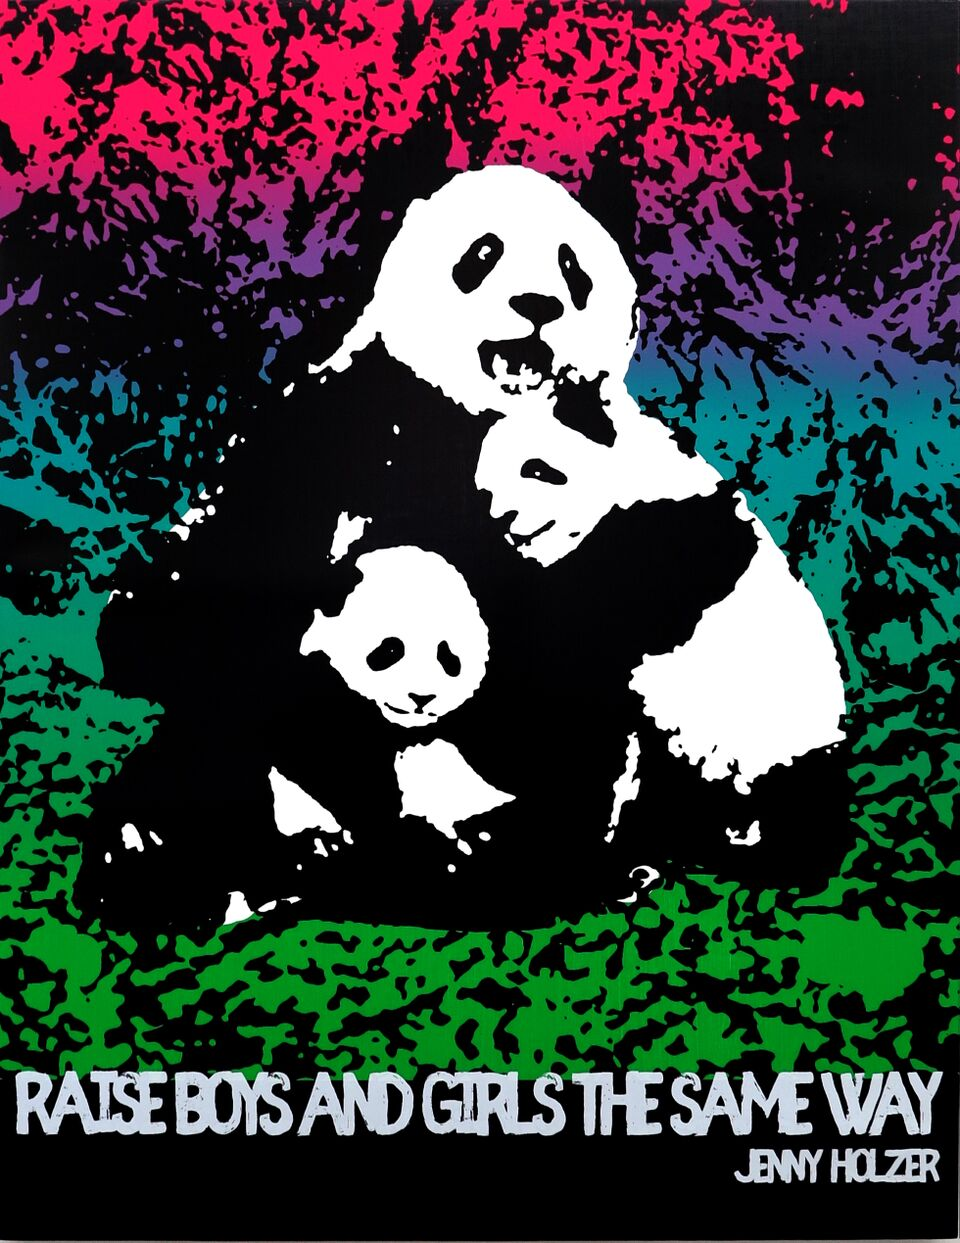 Motivational Panda (Jenny Holzer)